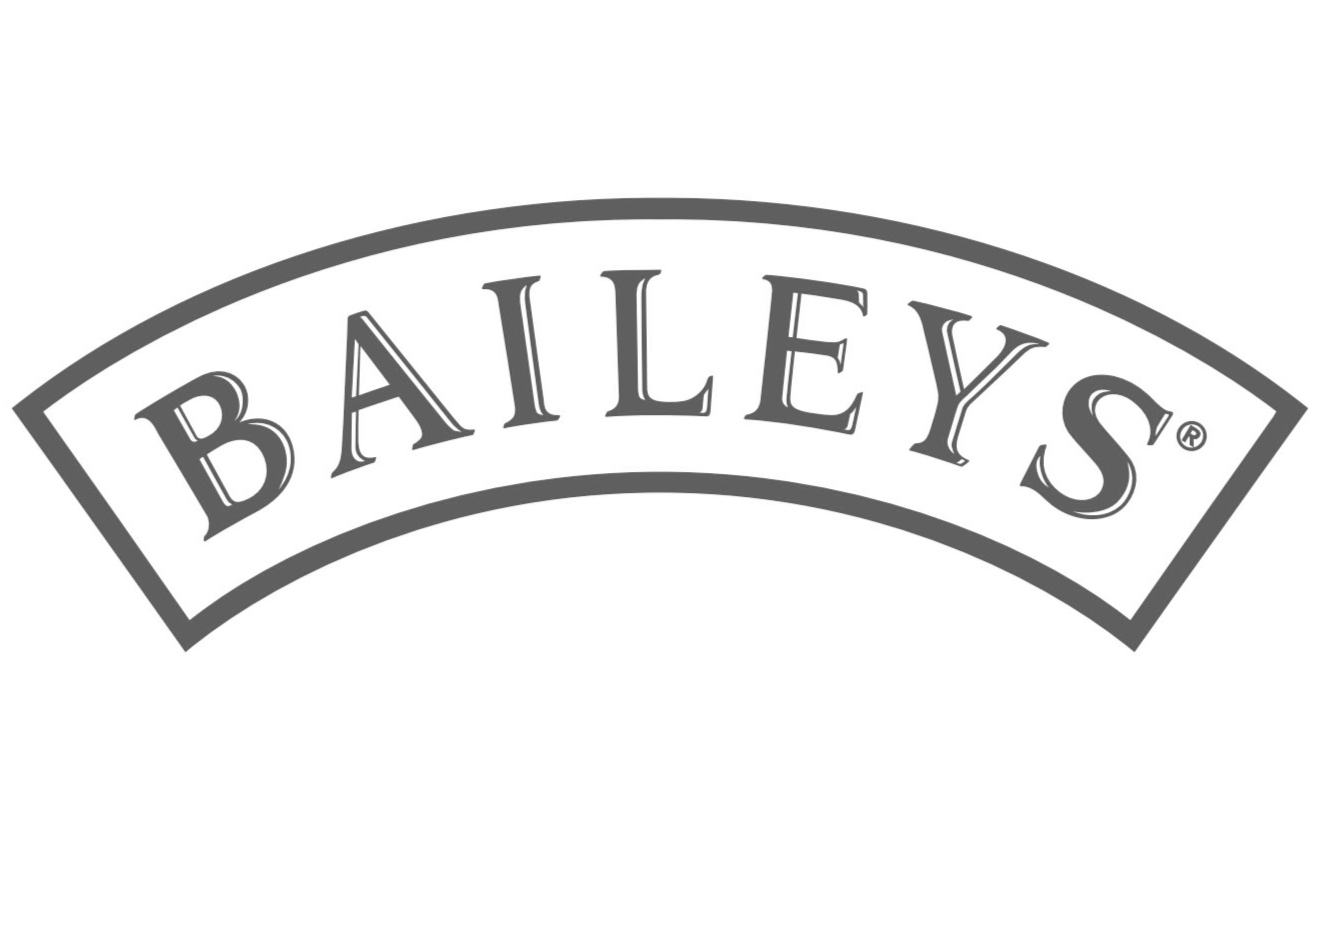 Baileys_Single_Colour_EyeBrow_P8005_Metallic_logo.ai-1527708361696 (2).jpg